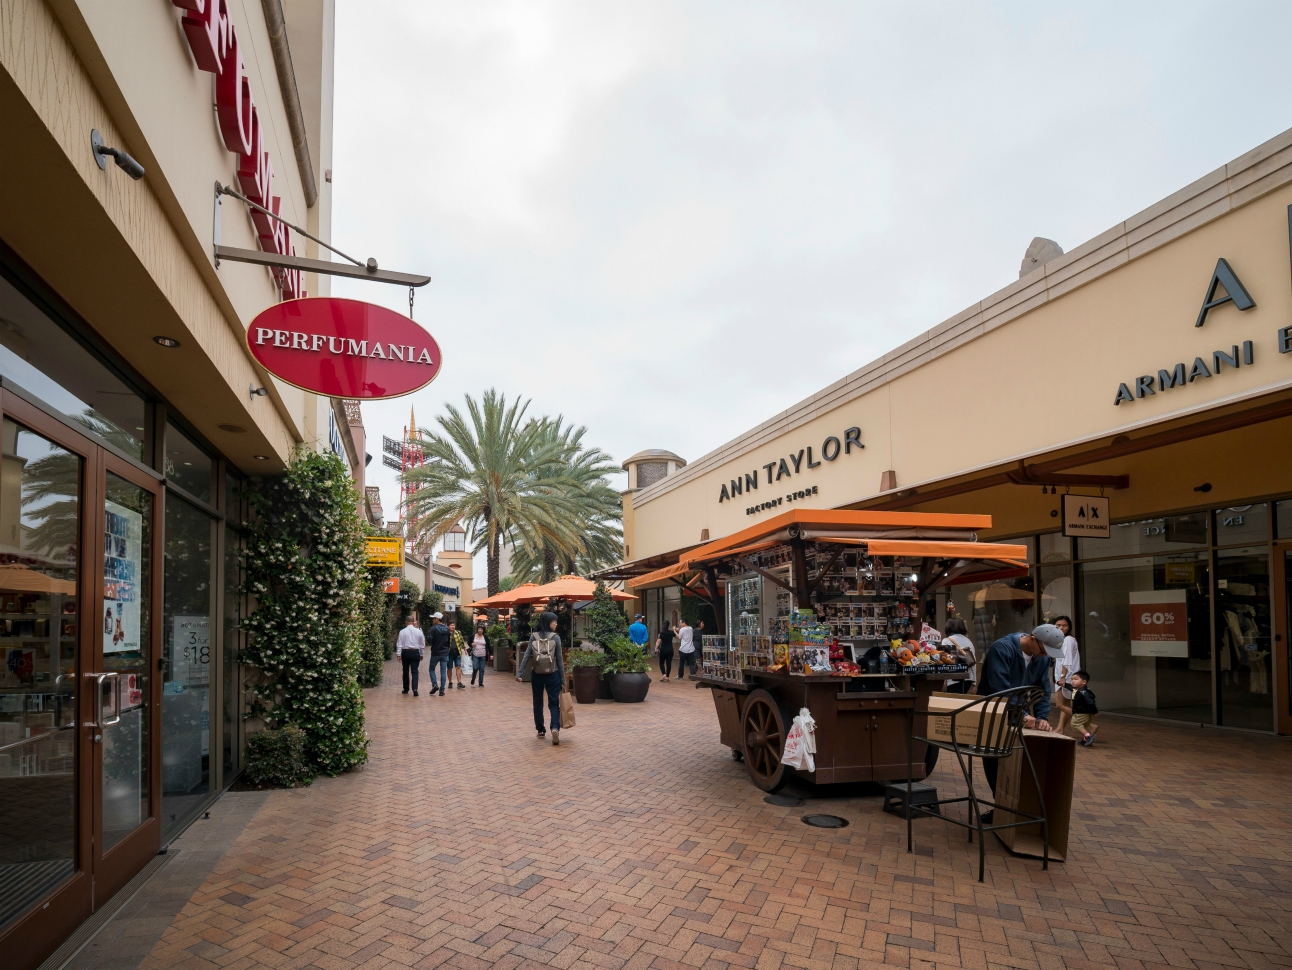 Separate from the lack of tourists, outlet stores are also missing sales from bulk buyers–the group of buyers once referred to as diverters.